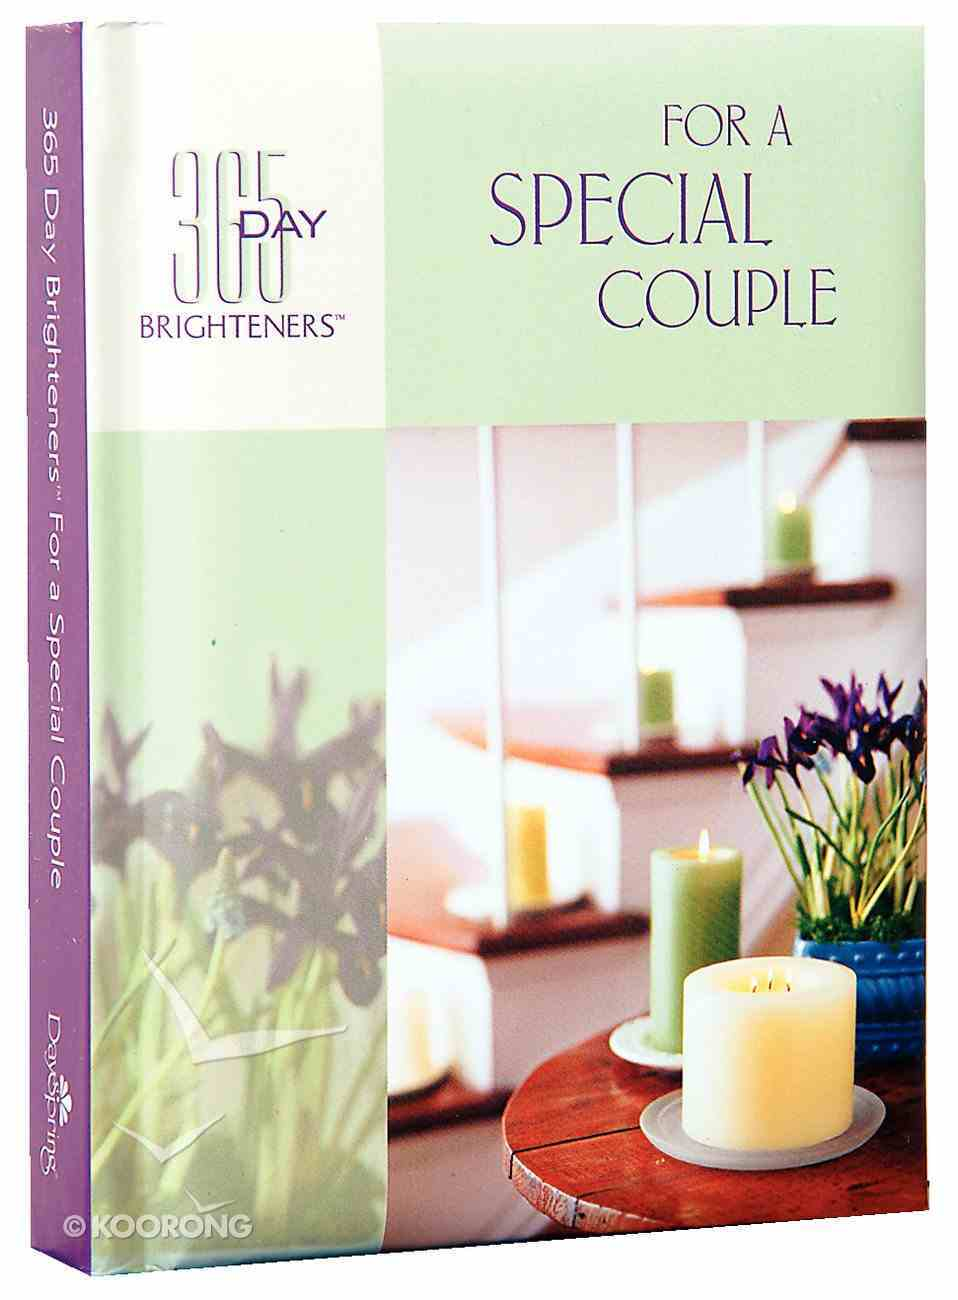 For a Special Couple (365 Day Brighteners Series) Hardback